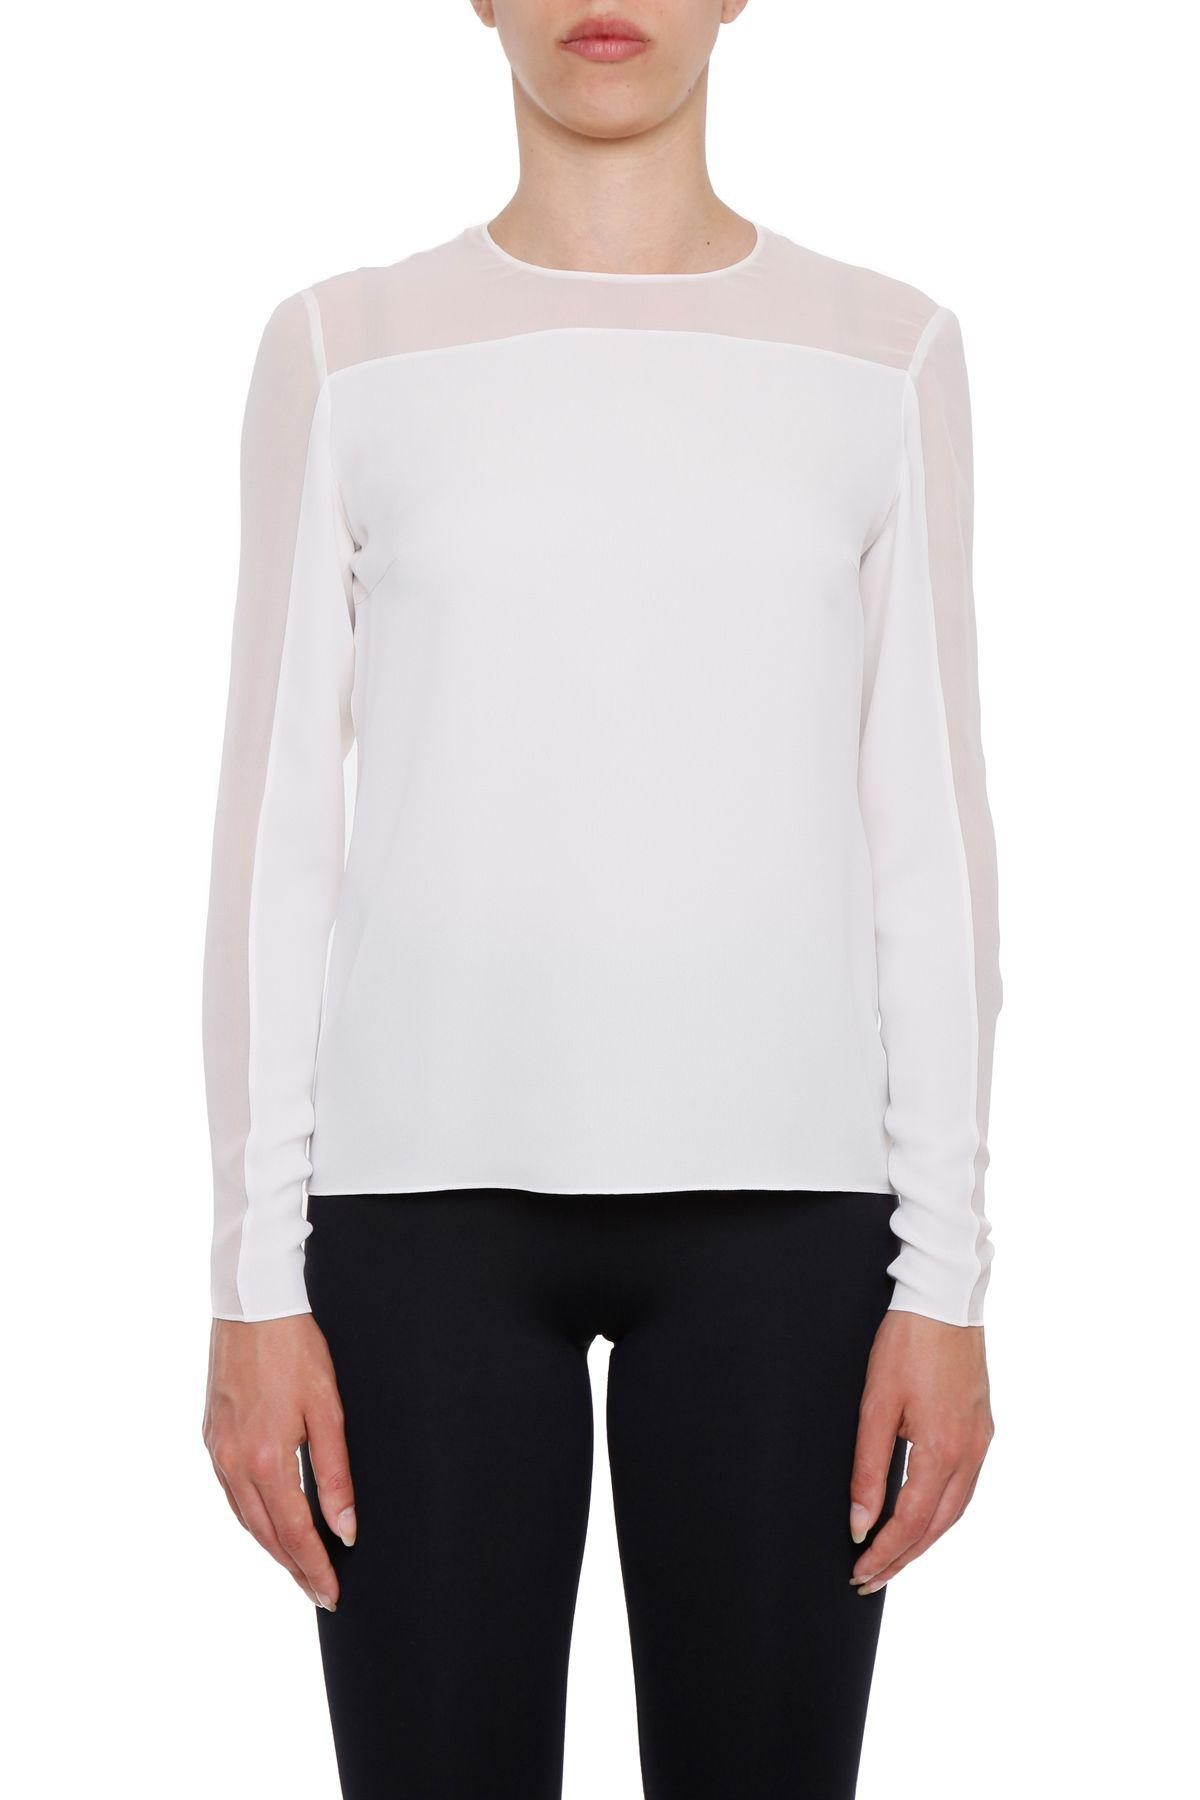 Tom Ford Silk Blouse In Chalk|bianco